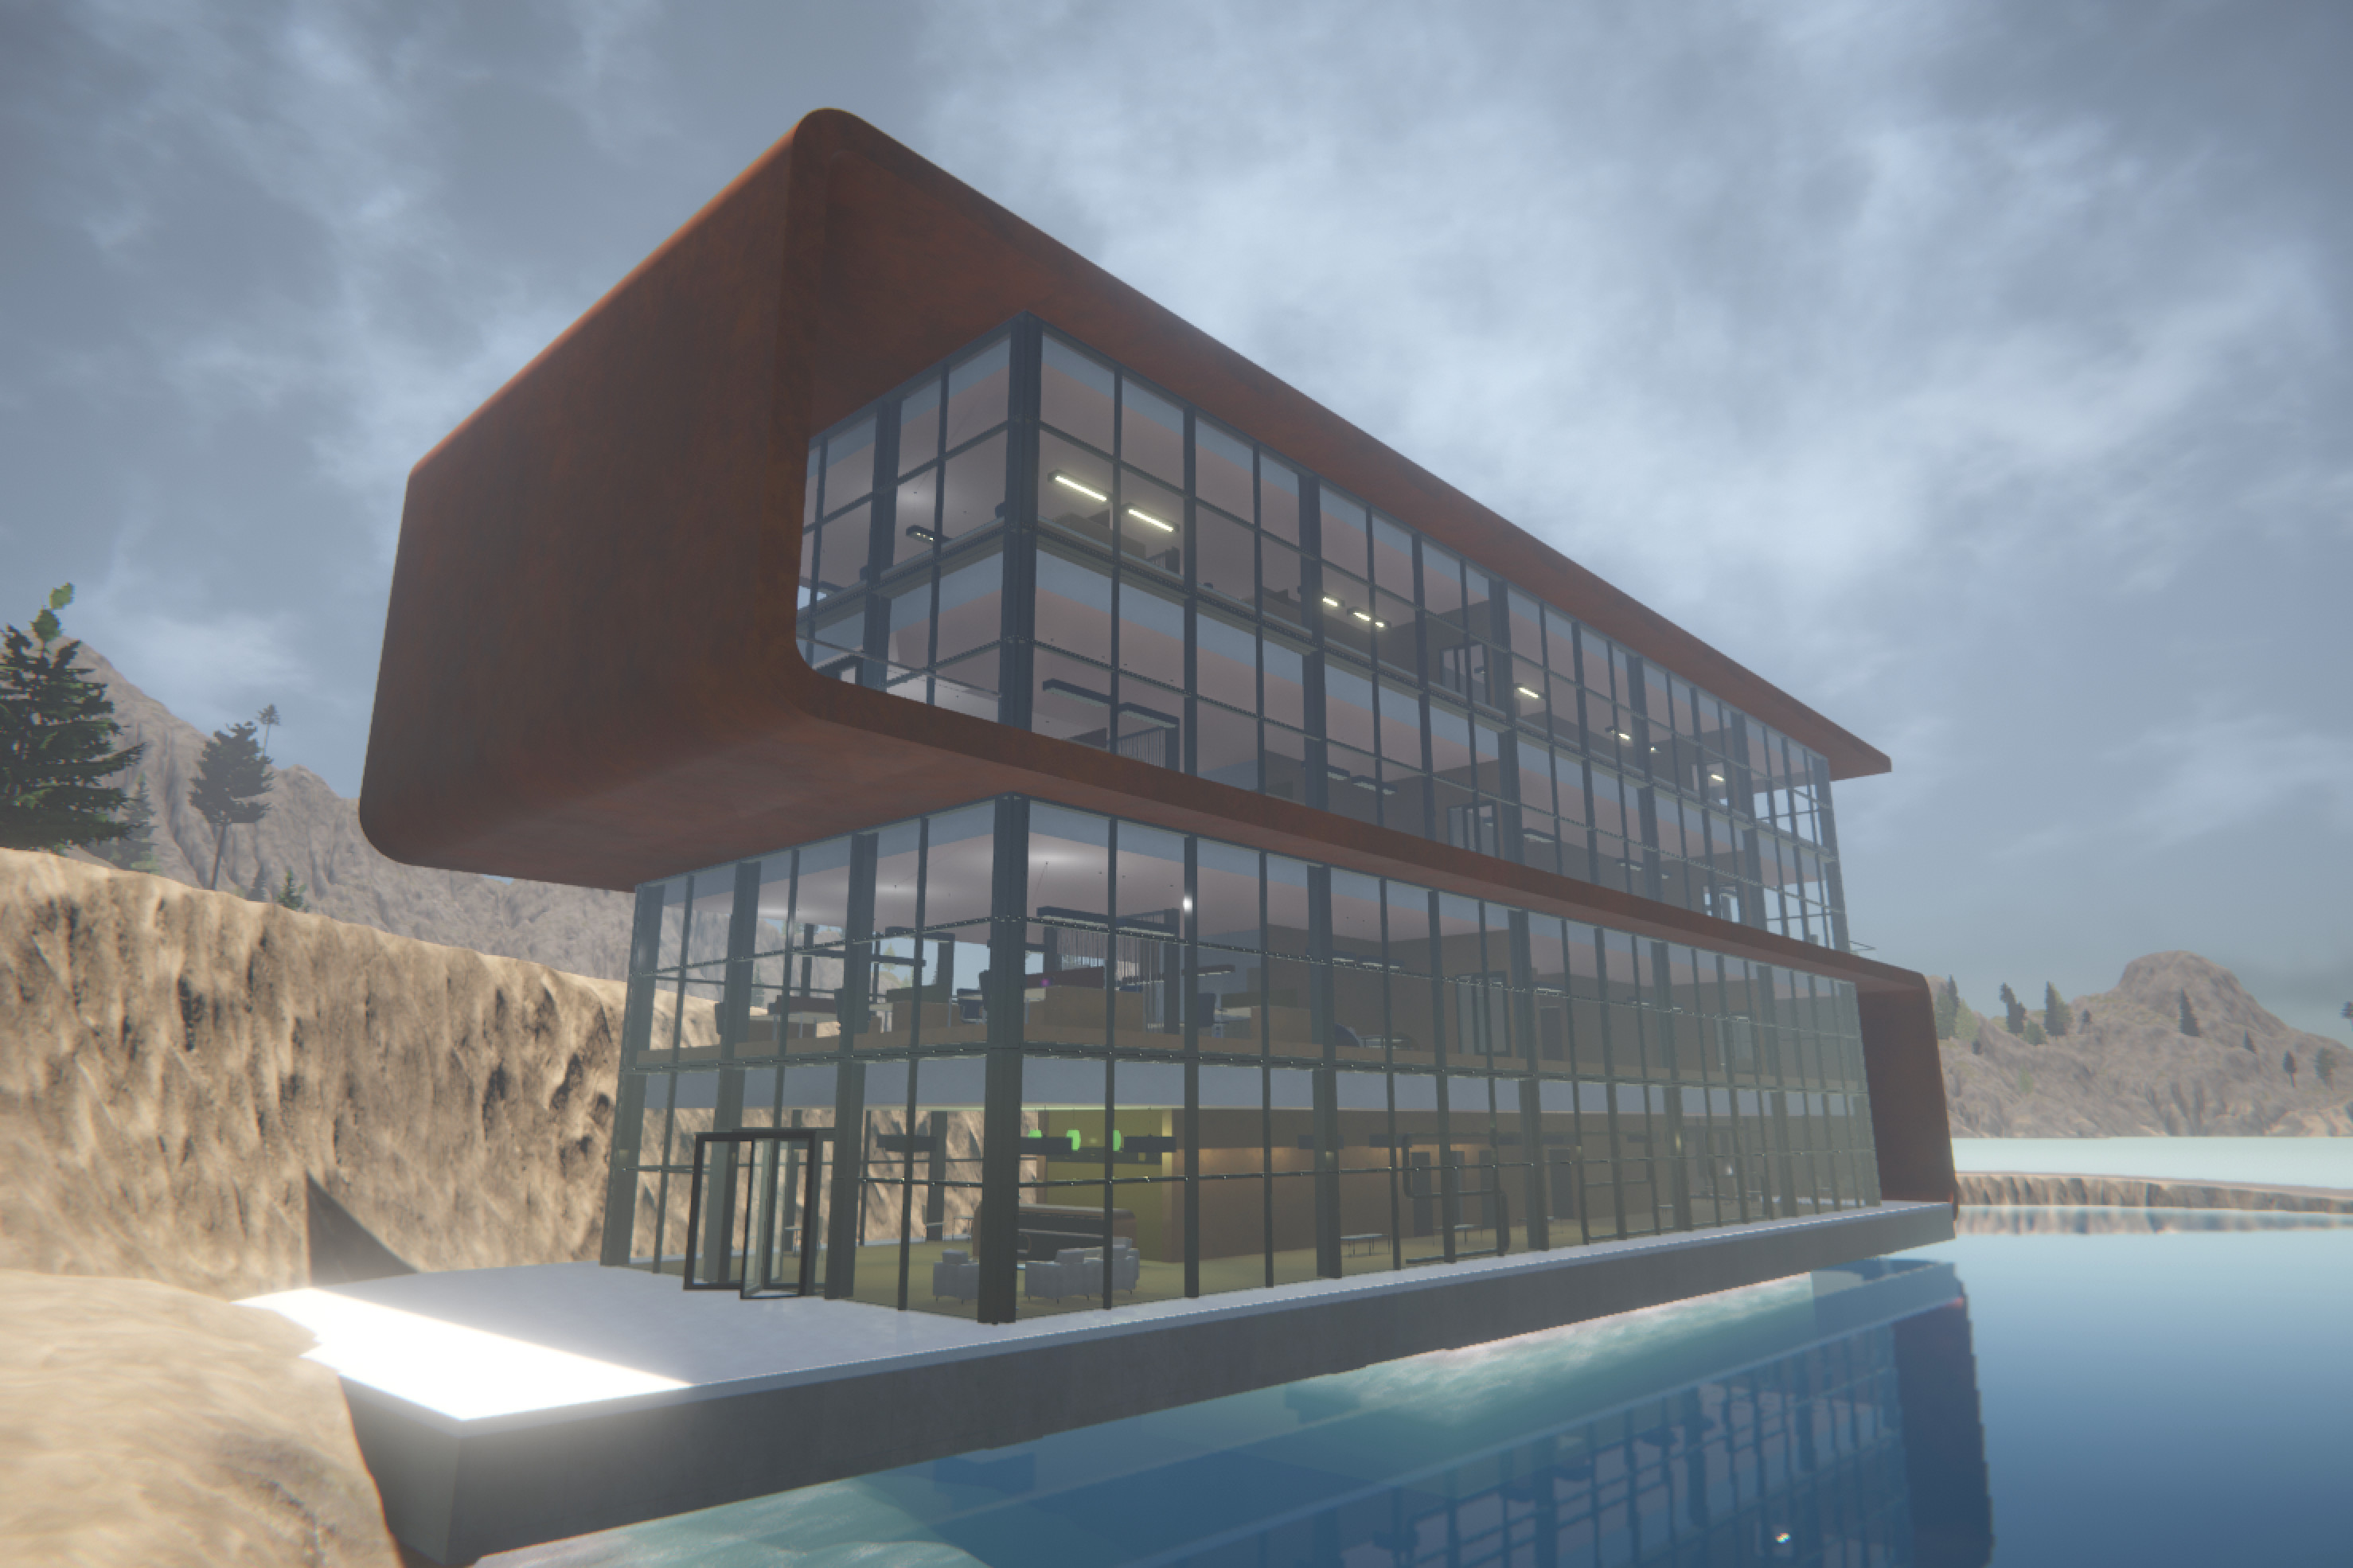 This is a Graphisoft example European office building, pulled into Unity from ArchiCAD via Modo - a test for dealing with large numbers of entities - furnishings, doors, partitions etc. Looks *great* clad in Corten steel - thanks to Substance in Unity!